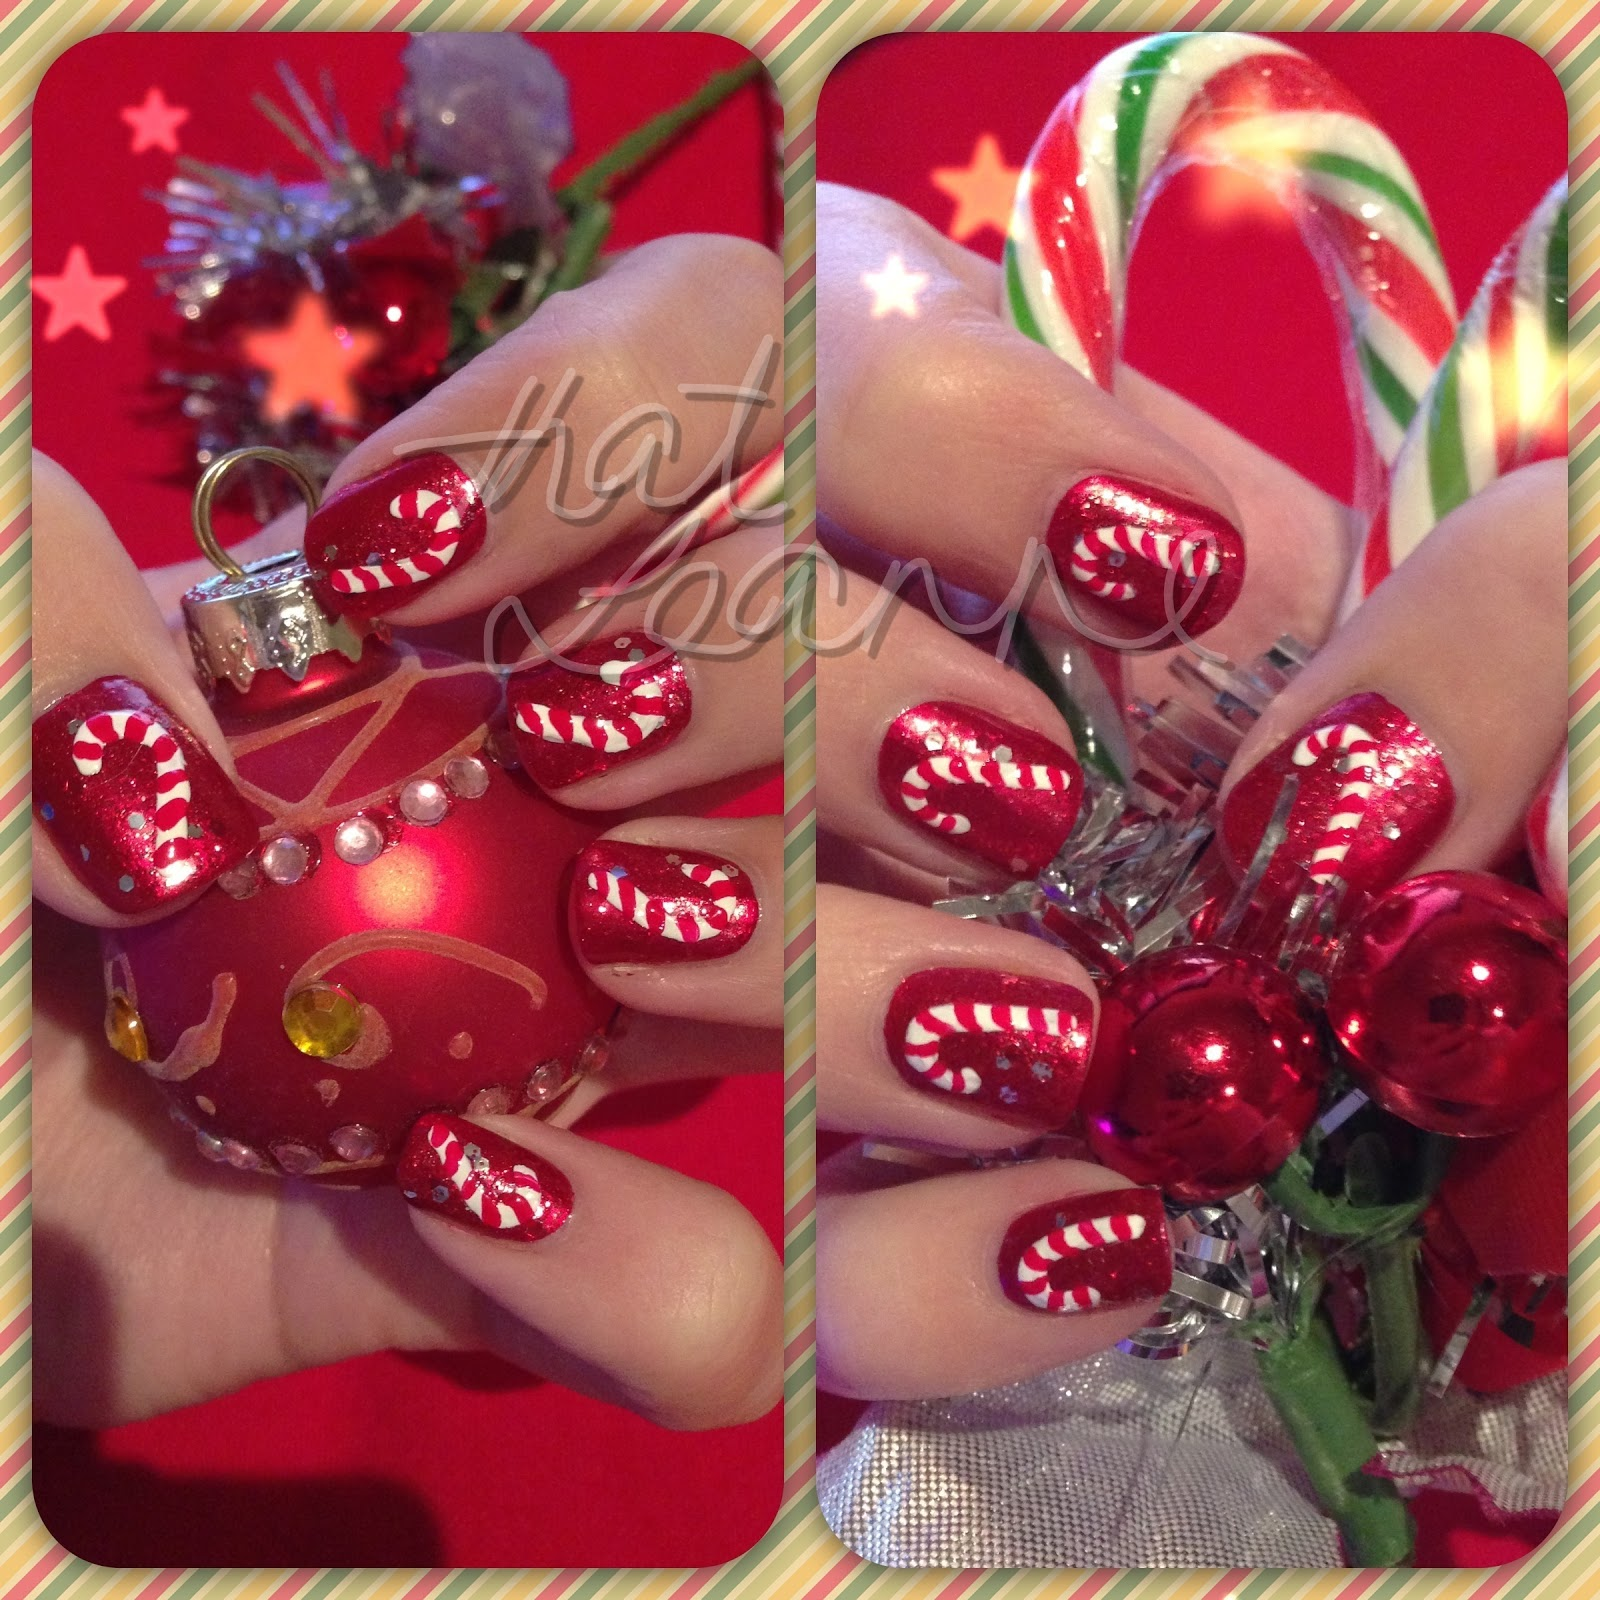 Thatleanne christmas eve candy cane nail art hi everyone ive been away but i couldnt let christmas pass by without a christmas nail art mani prinsesfo Image collections